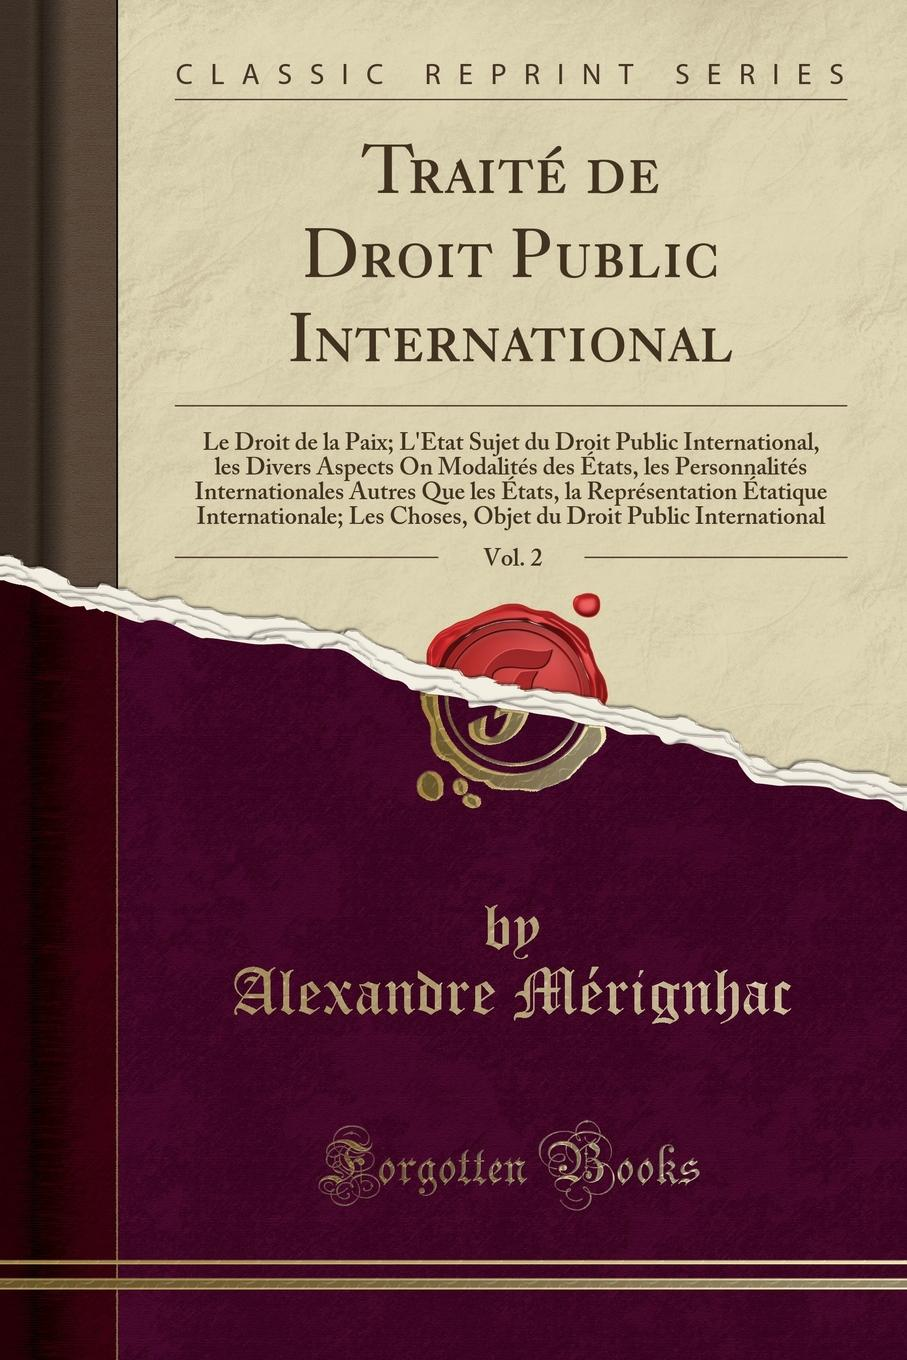 Alexandre Mérignhac Traite de Droit Public International, Vol. 2. Le Droit de la Paix; L.Etat Sujet du Droit Public International, les Divers Aspects On Modalites des Etats, les Personnalites Internationales Autres Que les Etats, la Representation Etatique Internatio jules valéry les assurances sur la vie en droit international prive